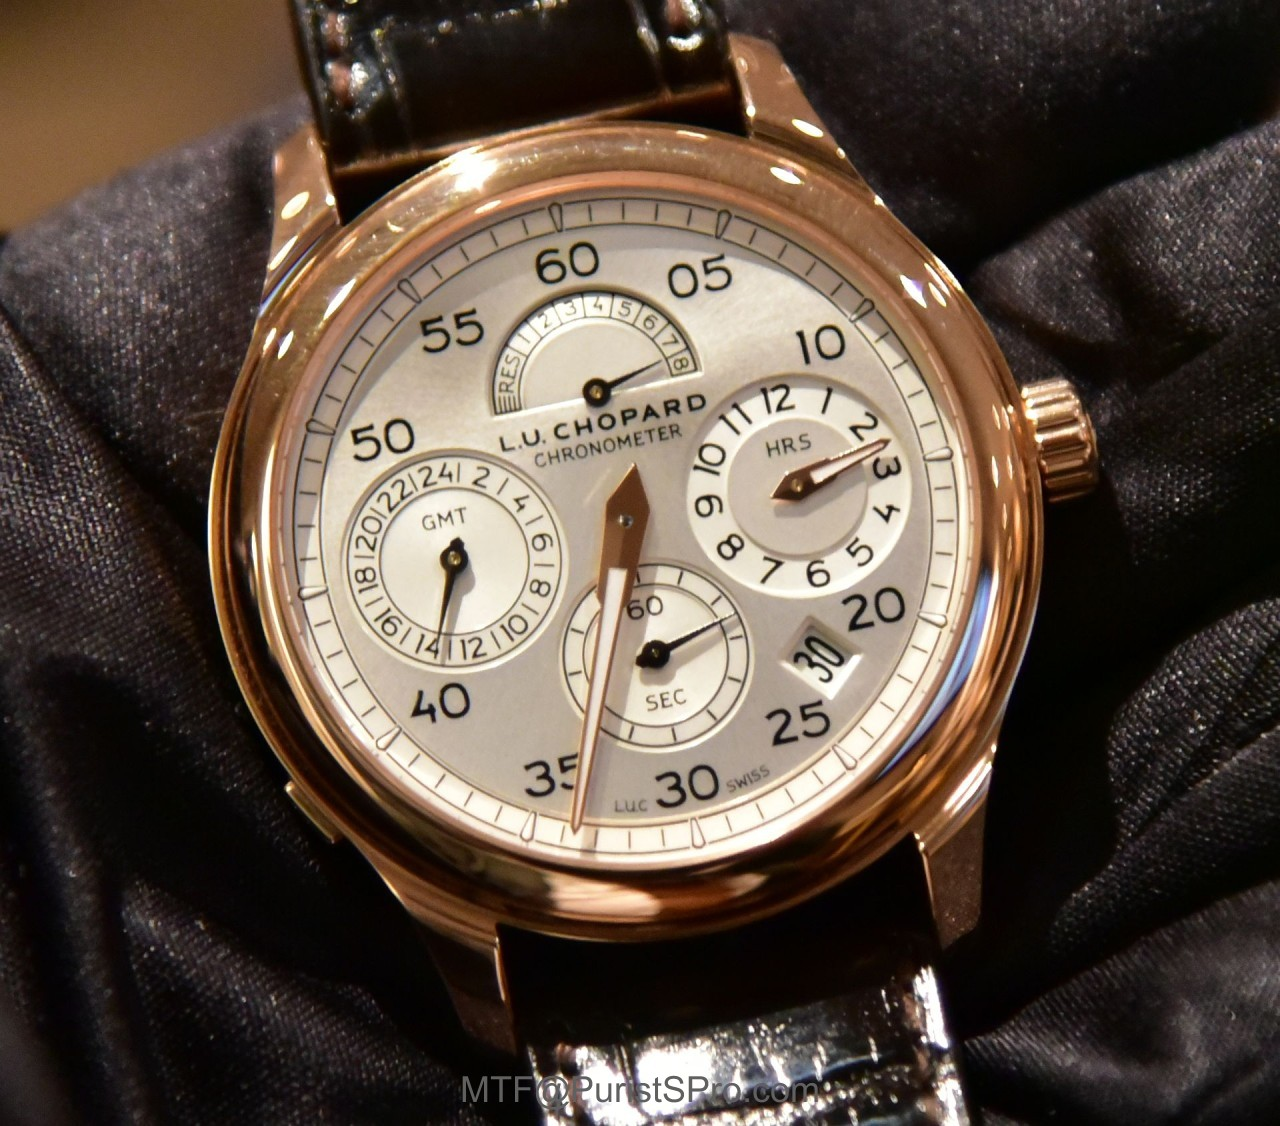 f63368ca7569a9 Chopard reinterpreted a classic from its L.U.C Haute Horlogerie collection  with the new L.U.C Regulator model. The improved dial design allows current  ...